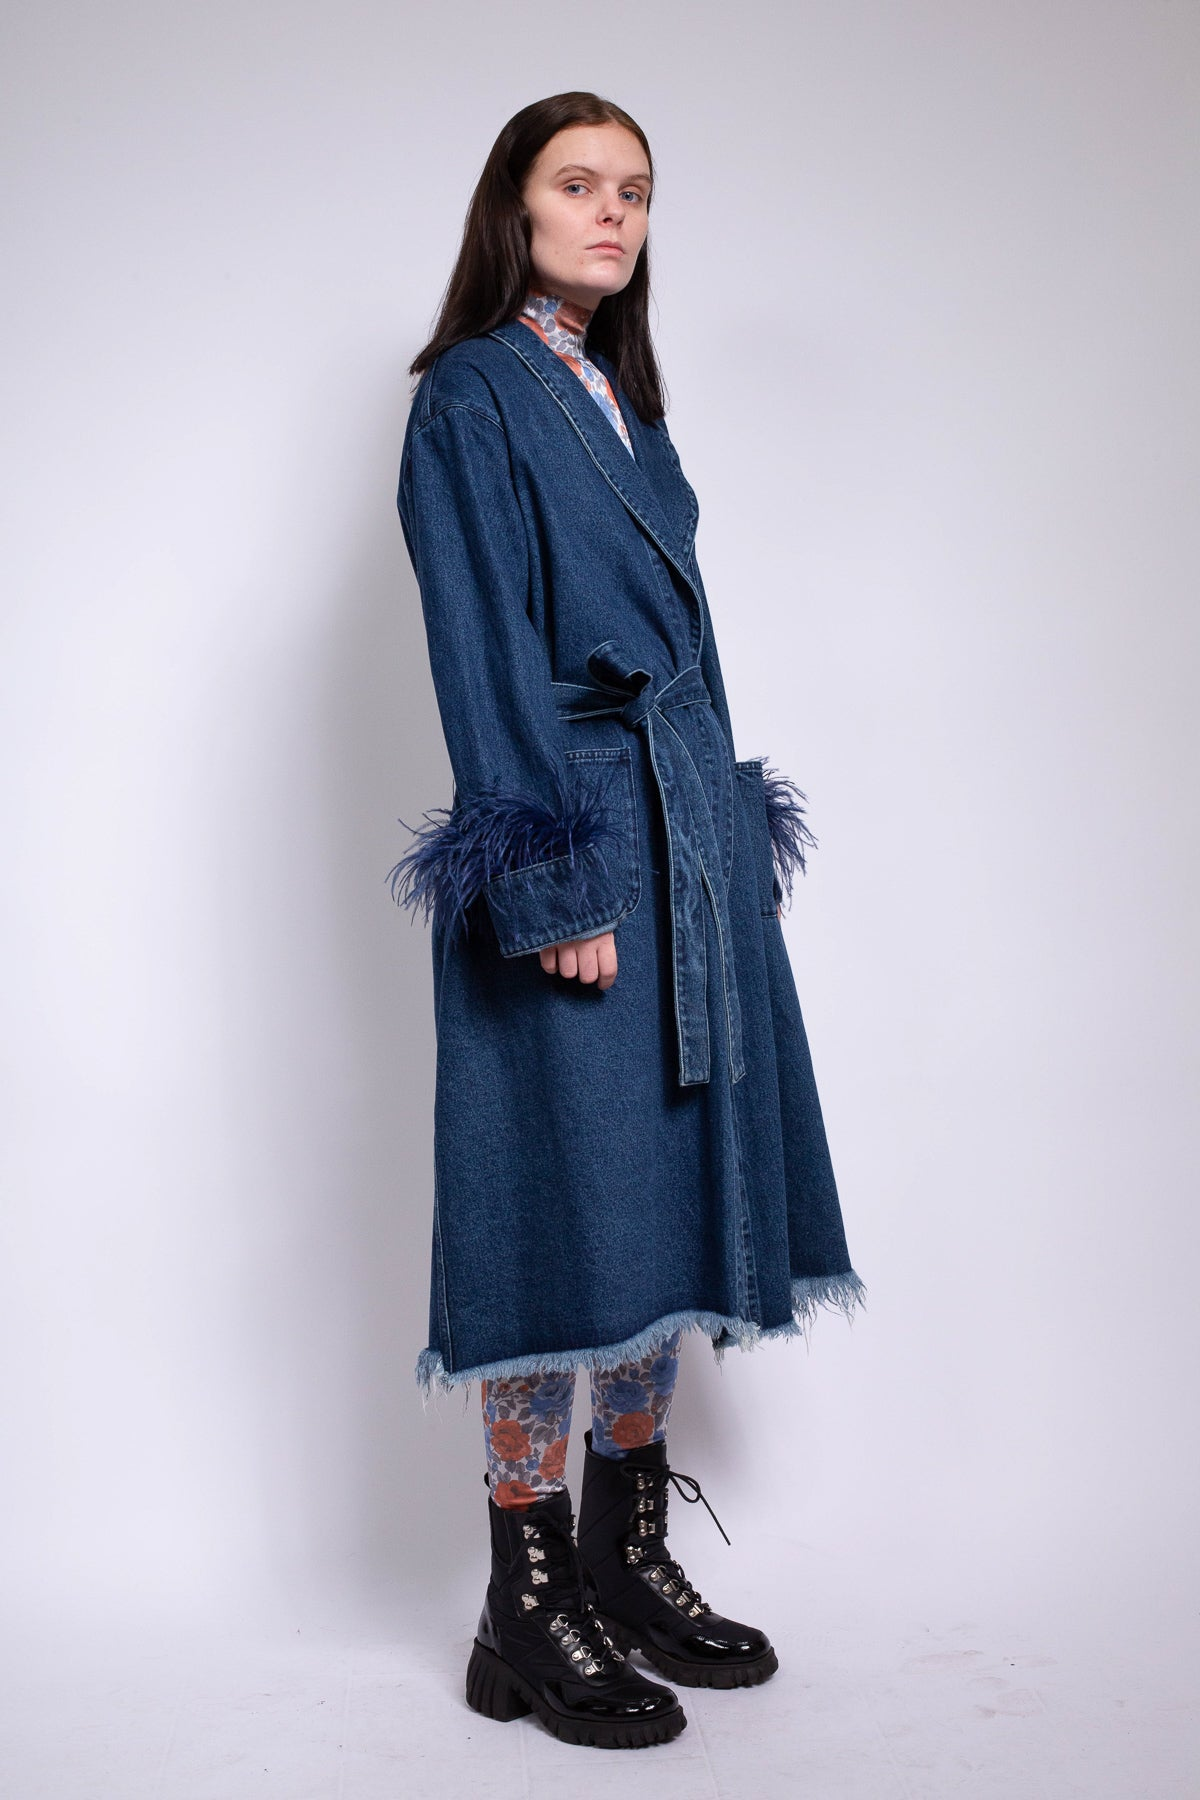 DRESSING GOWN STYLE COAT IN BLUE DENIM